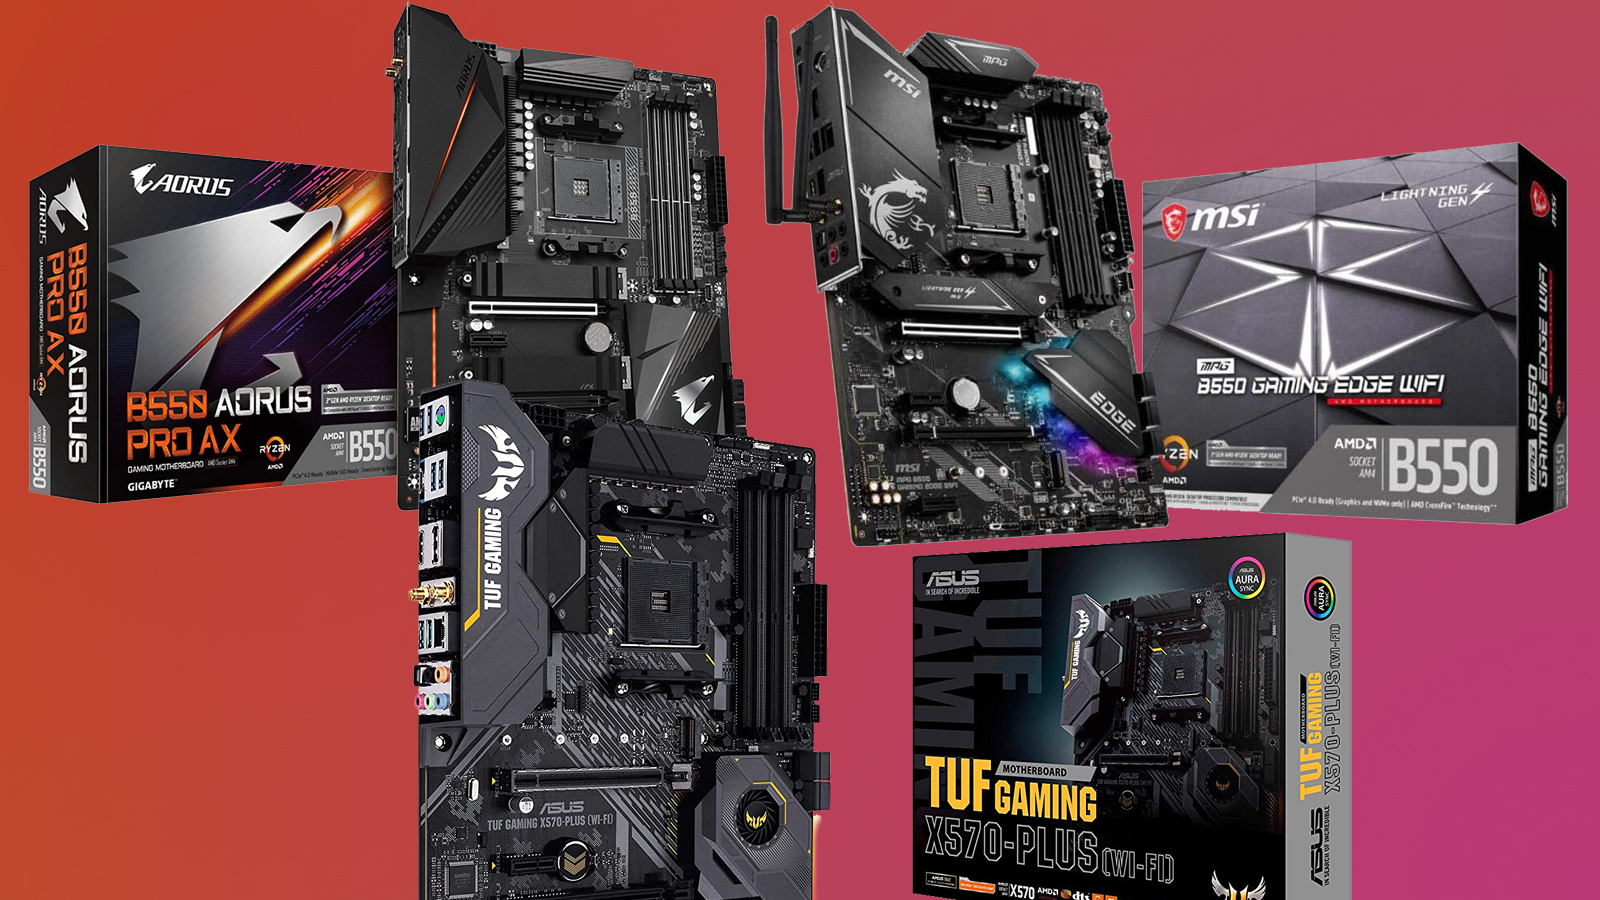 5 Best Motherboards For Ryzen 7 3700x In 2021 Push The Zen 2 Architecture To Its Limits Technadu